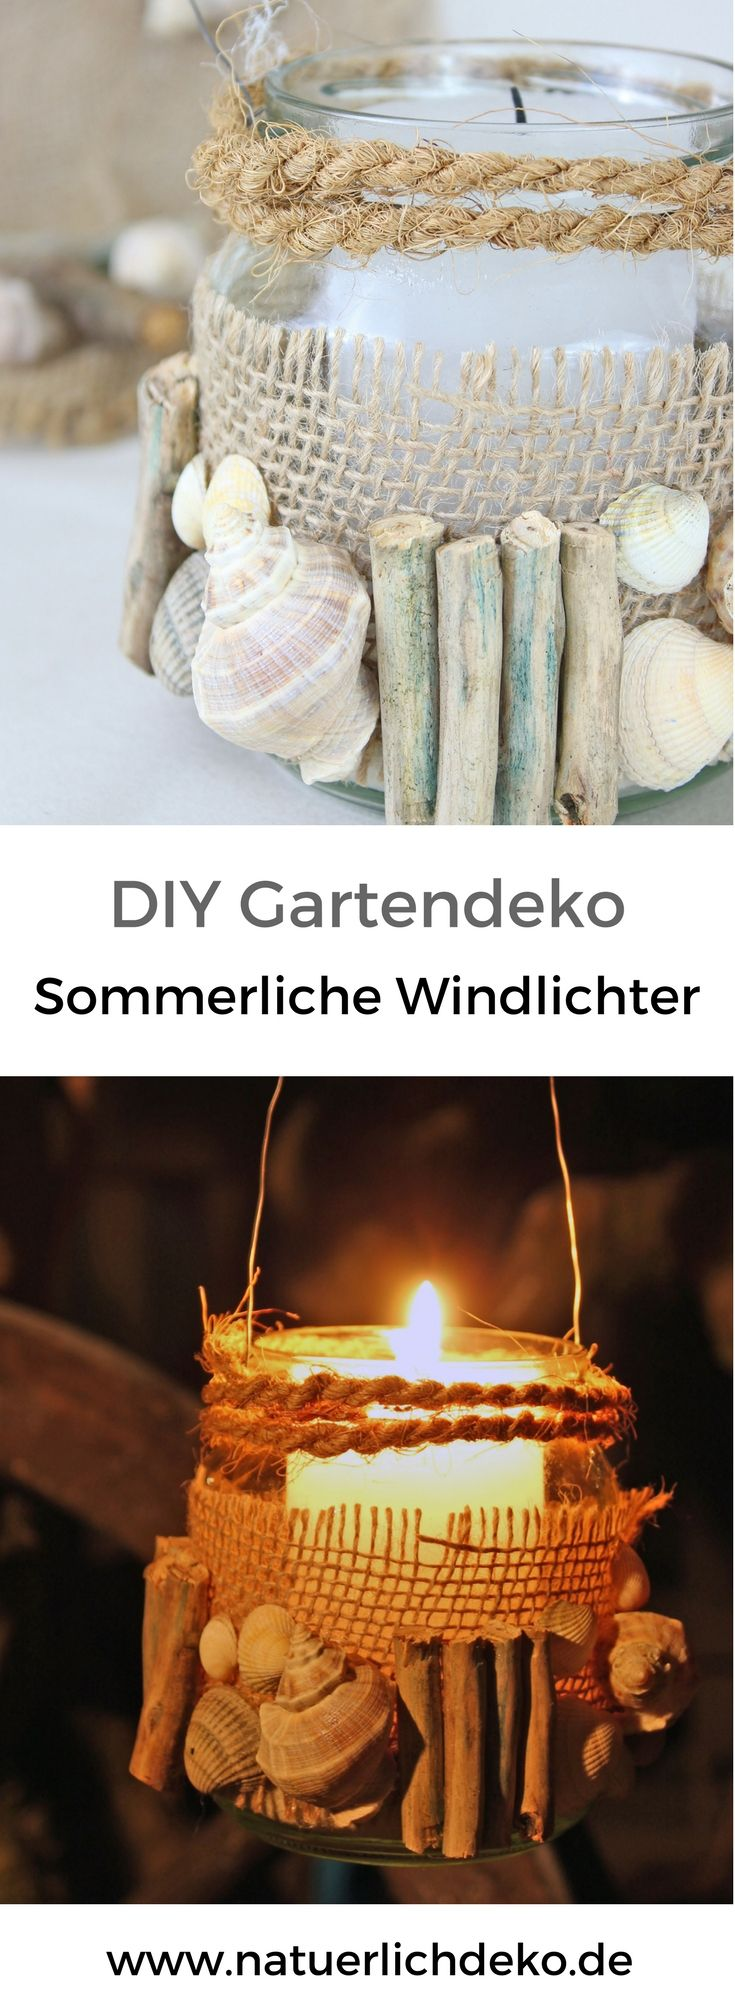 diy windlicht mit holz und muscheln nat rlich deko deko mit naturmaterialien pinterest. Black Bedroom Furniture Sets. Home Design Ideas